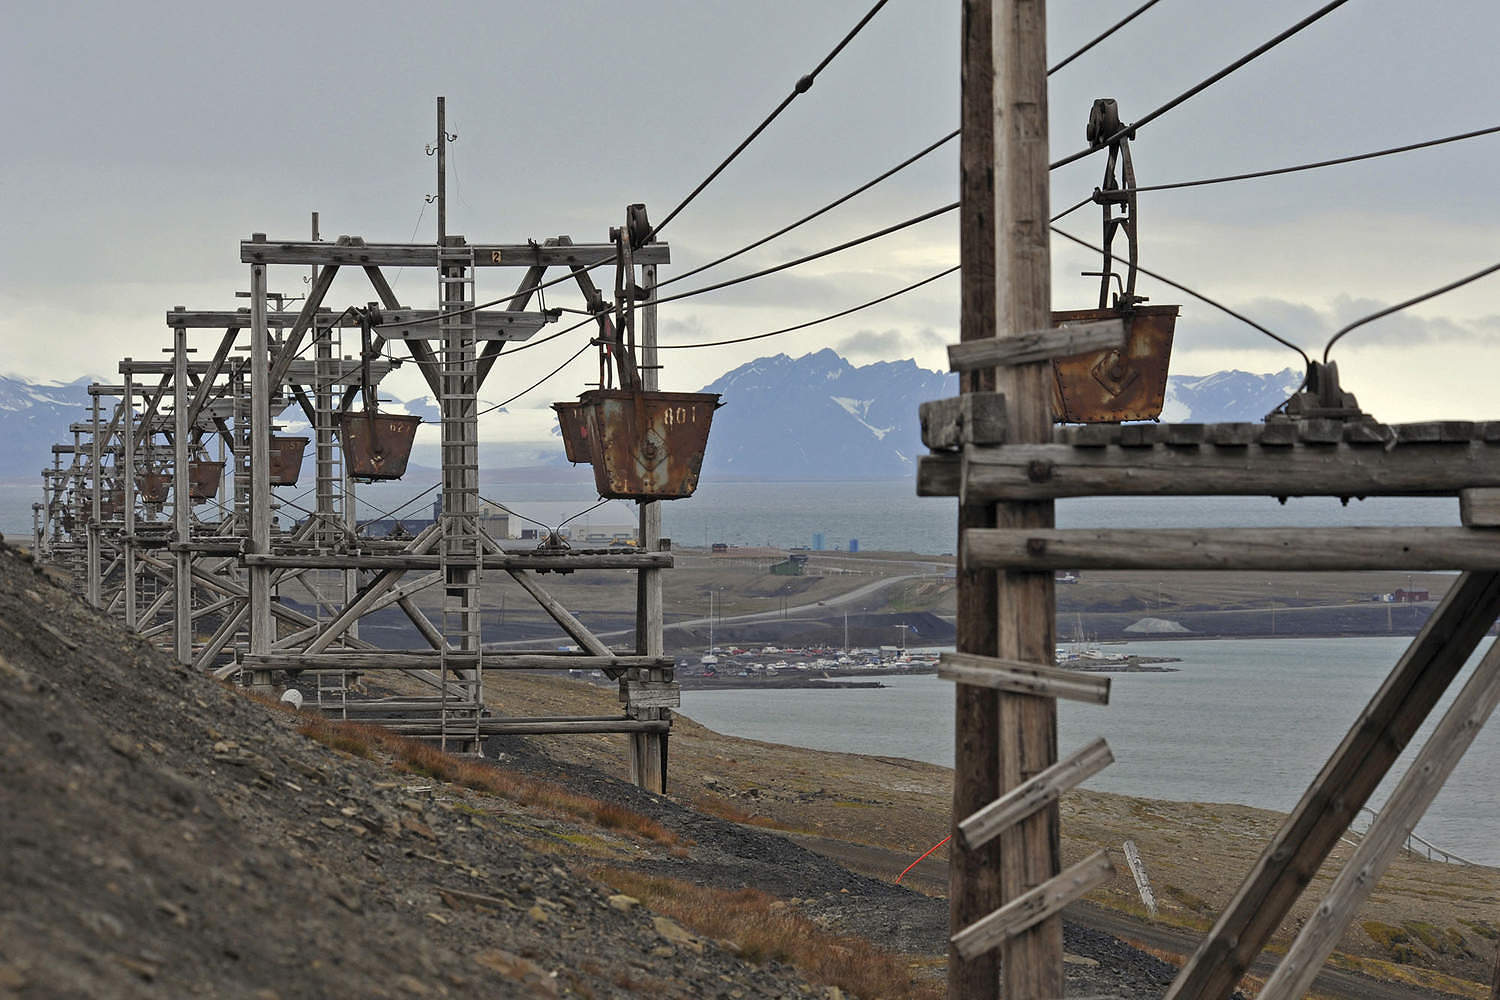 Historical wooden mining cableway for transporting coal, 21 August 2012